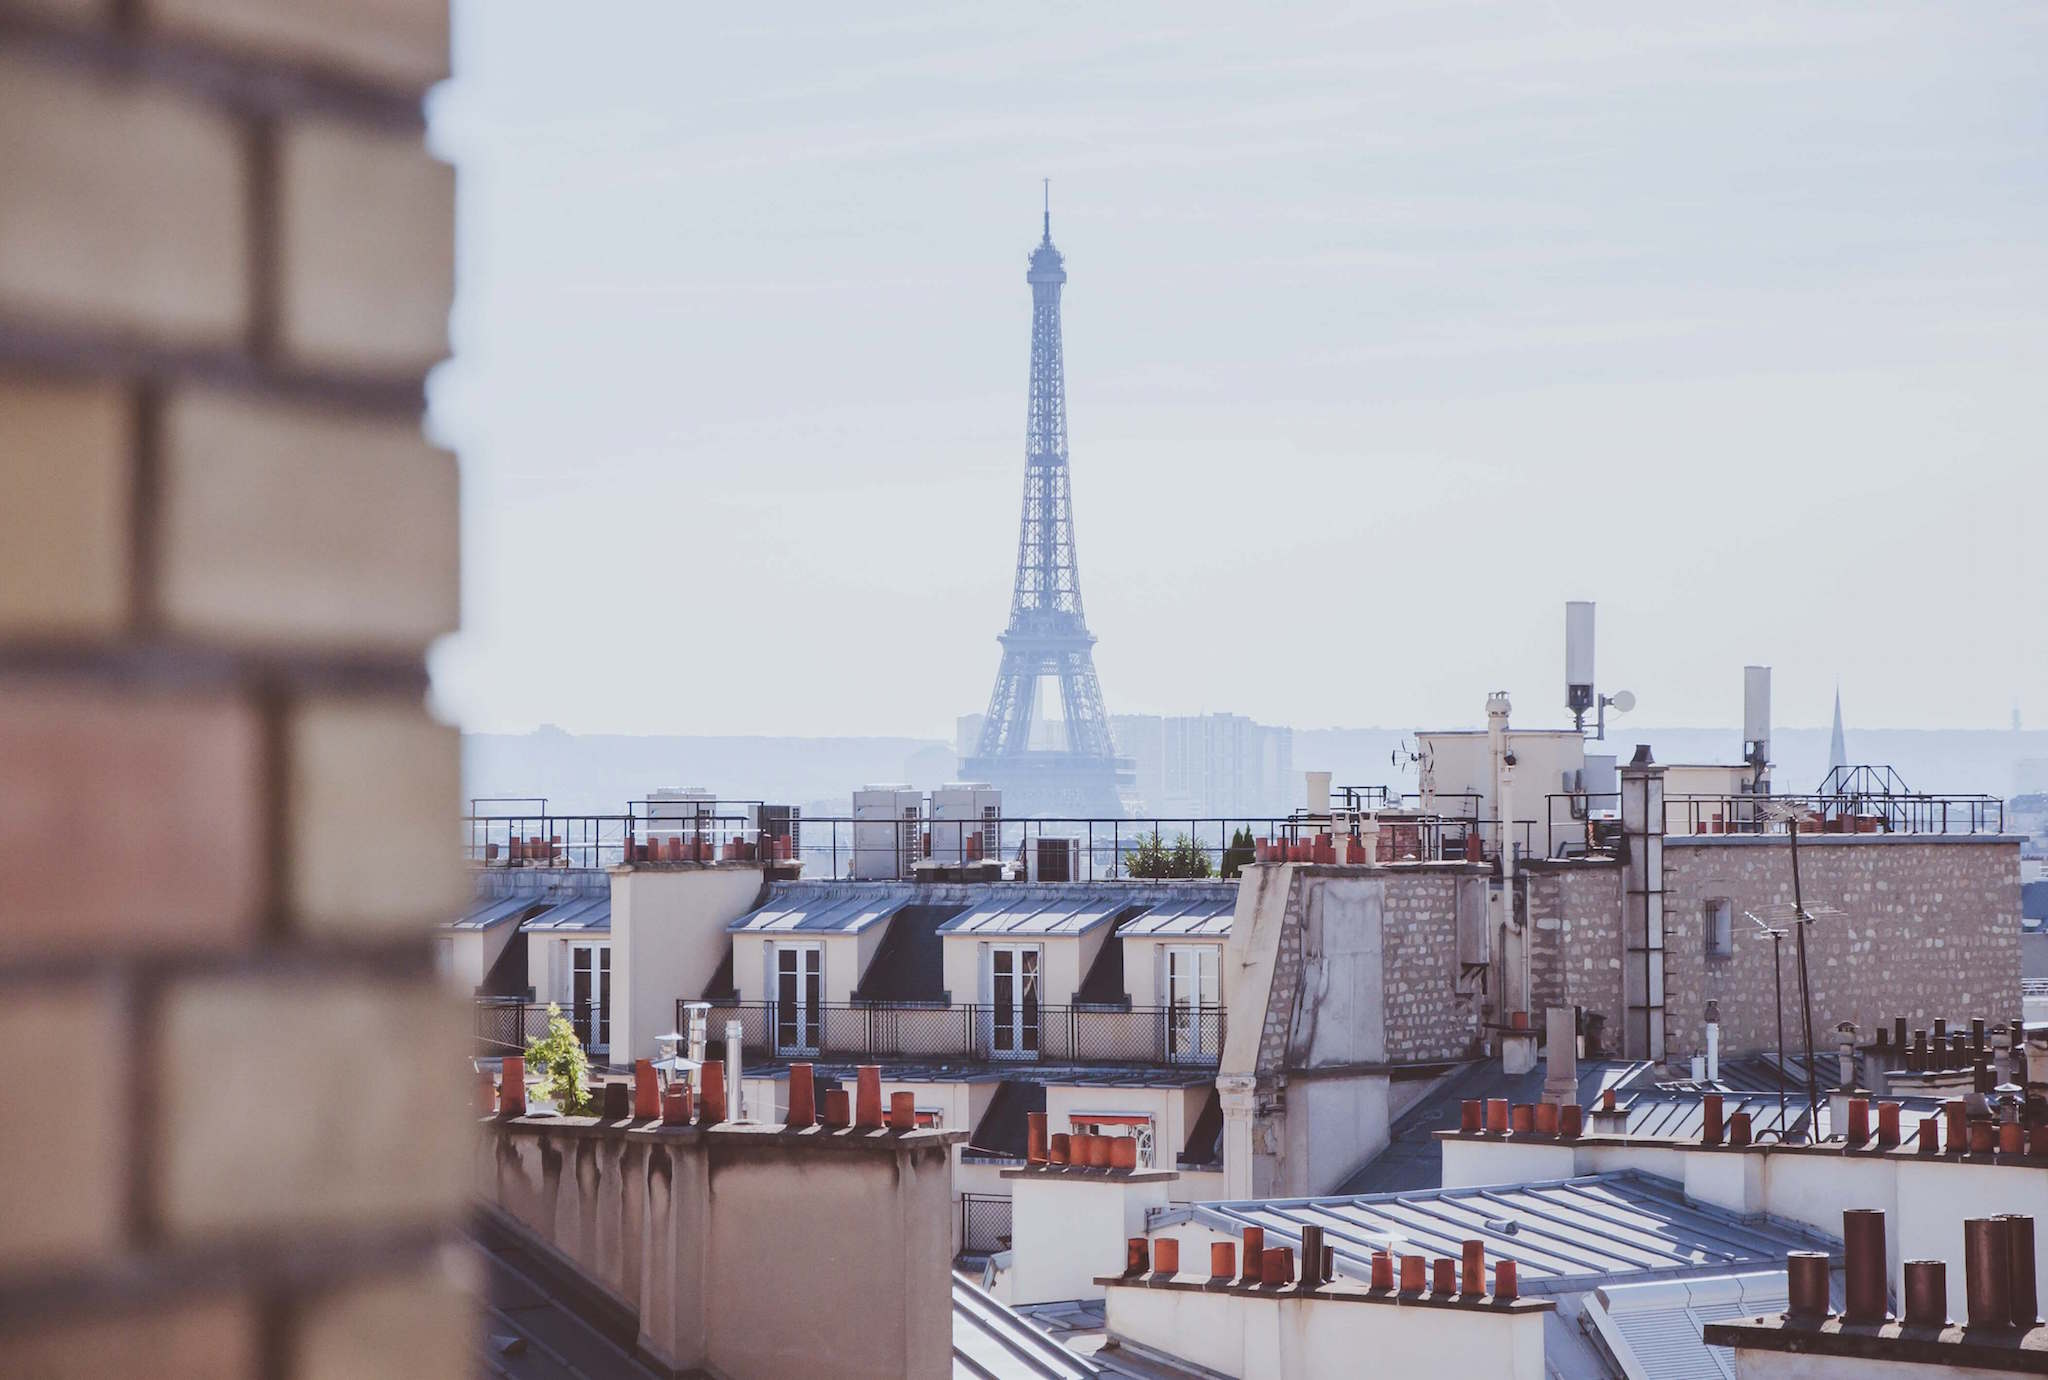 The Eiffel Tower can be seen in the hazy distance, and sunny Parisian rooftops can be seen in the forefront.